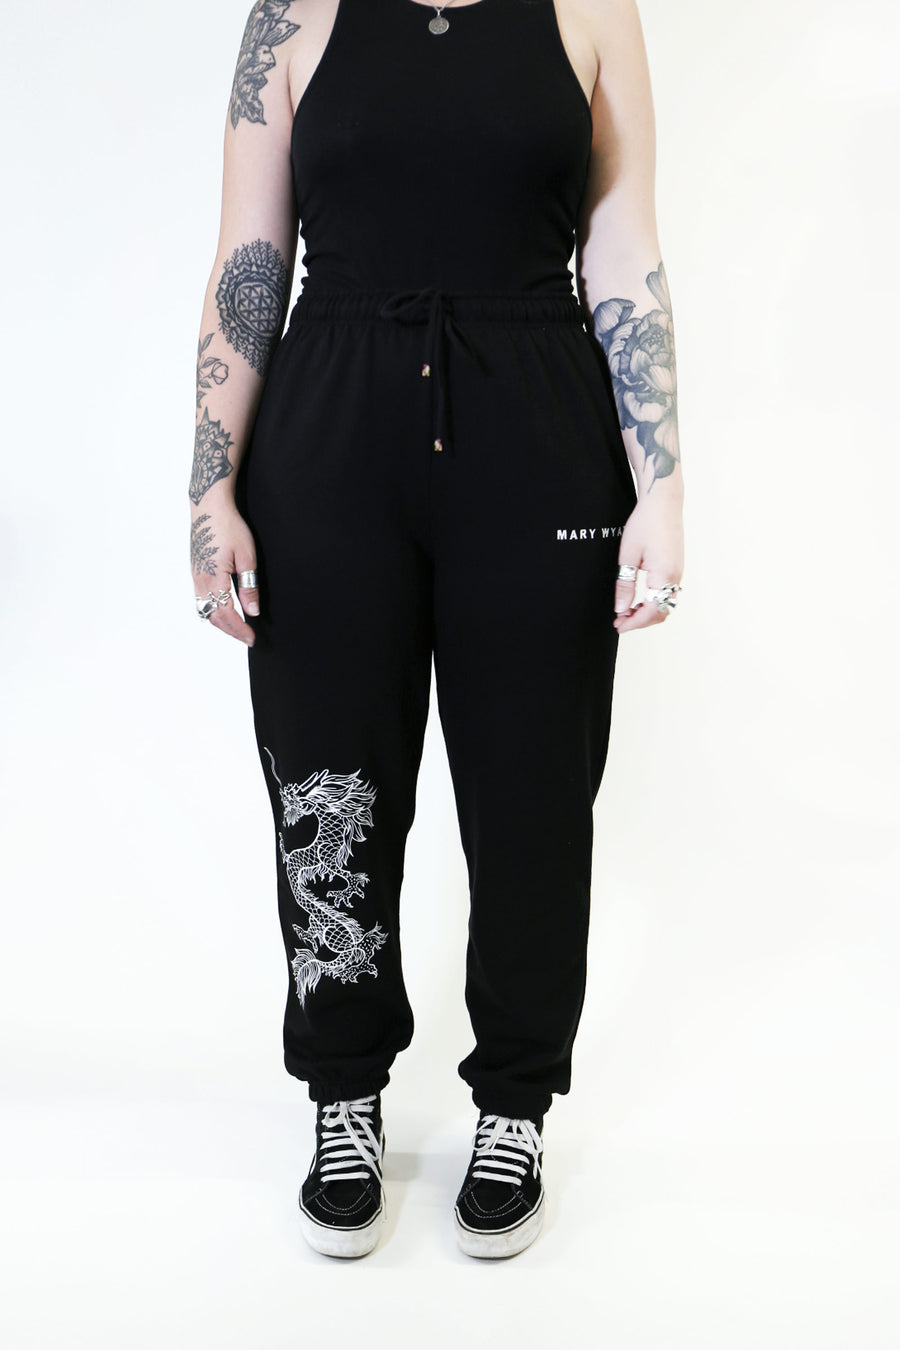 Hellion Sweatpants